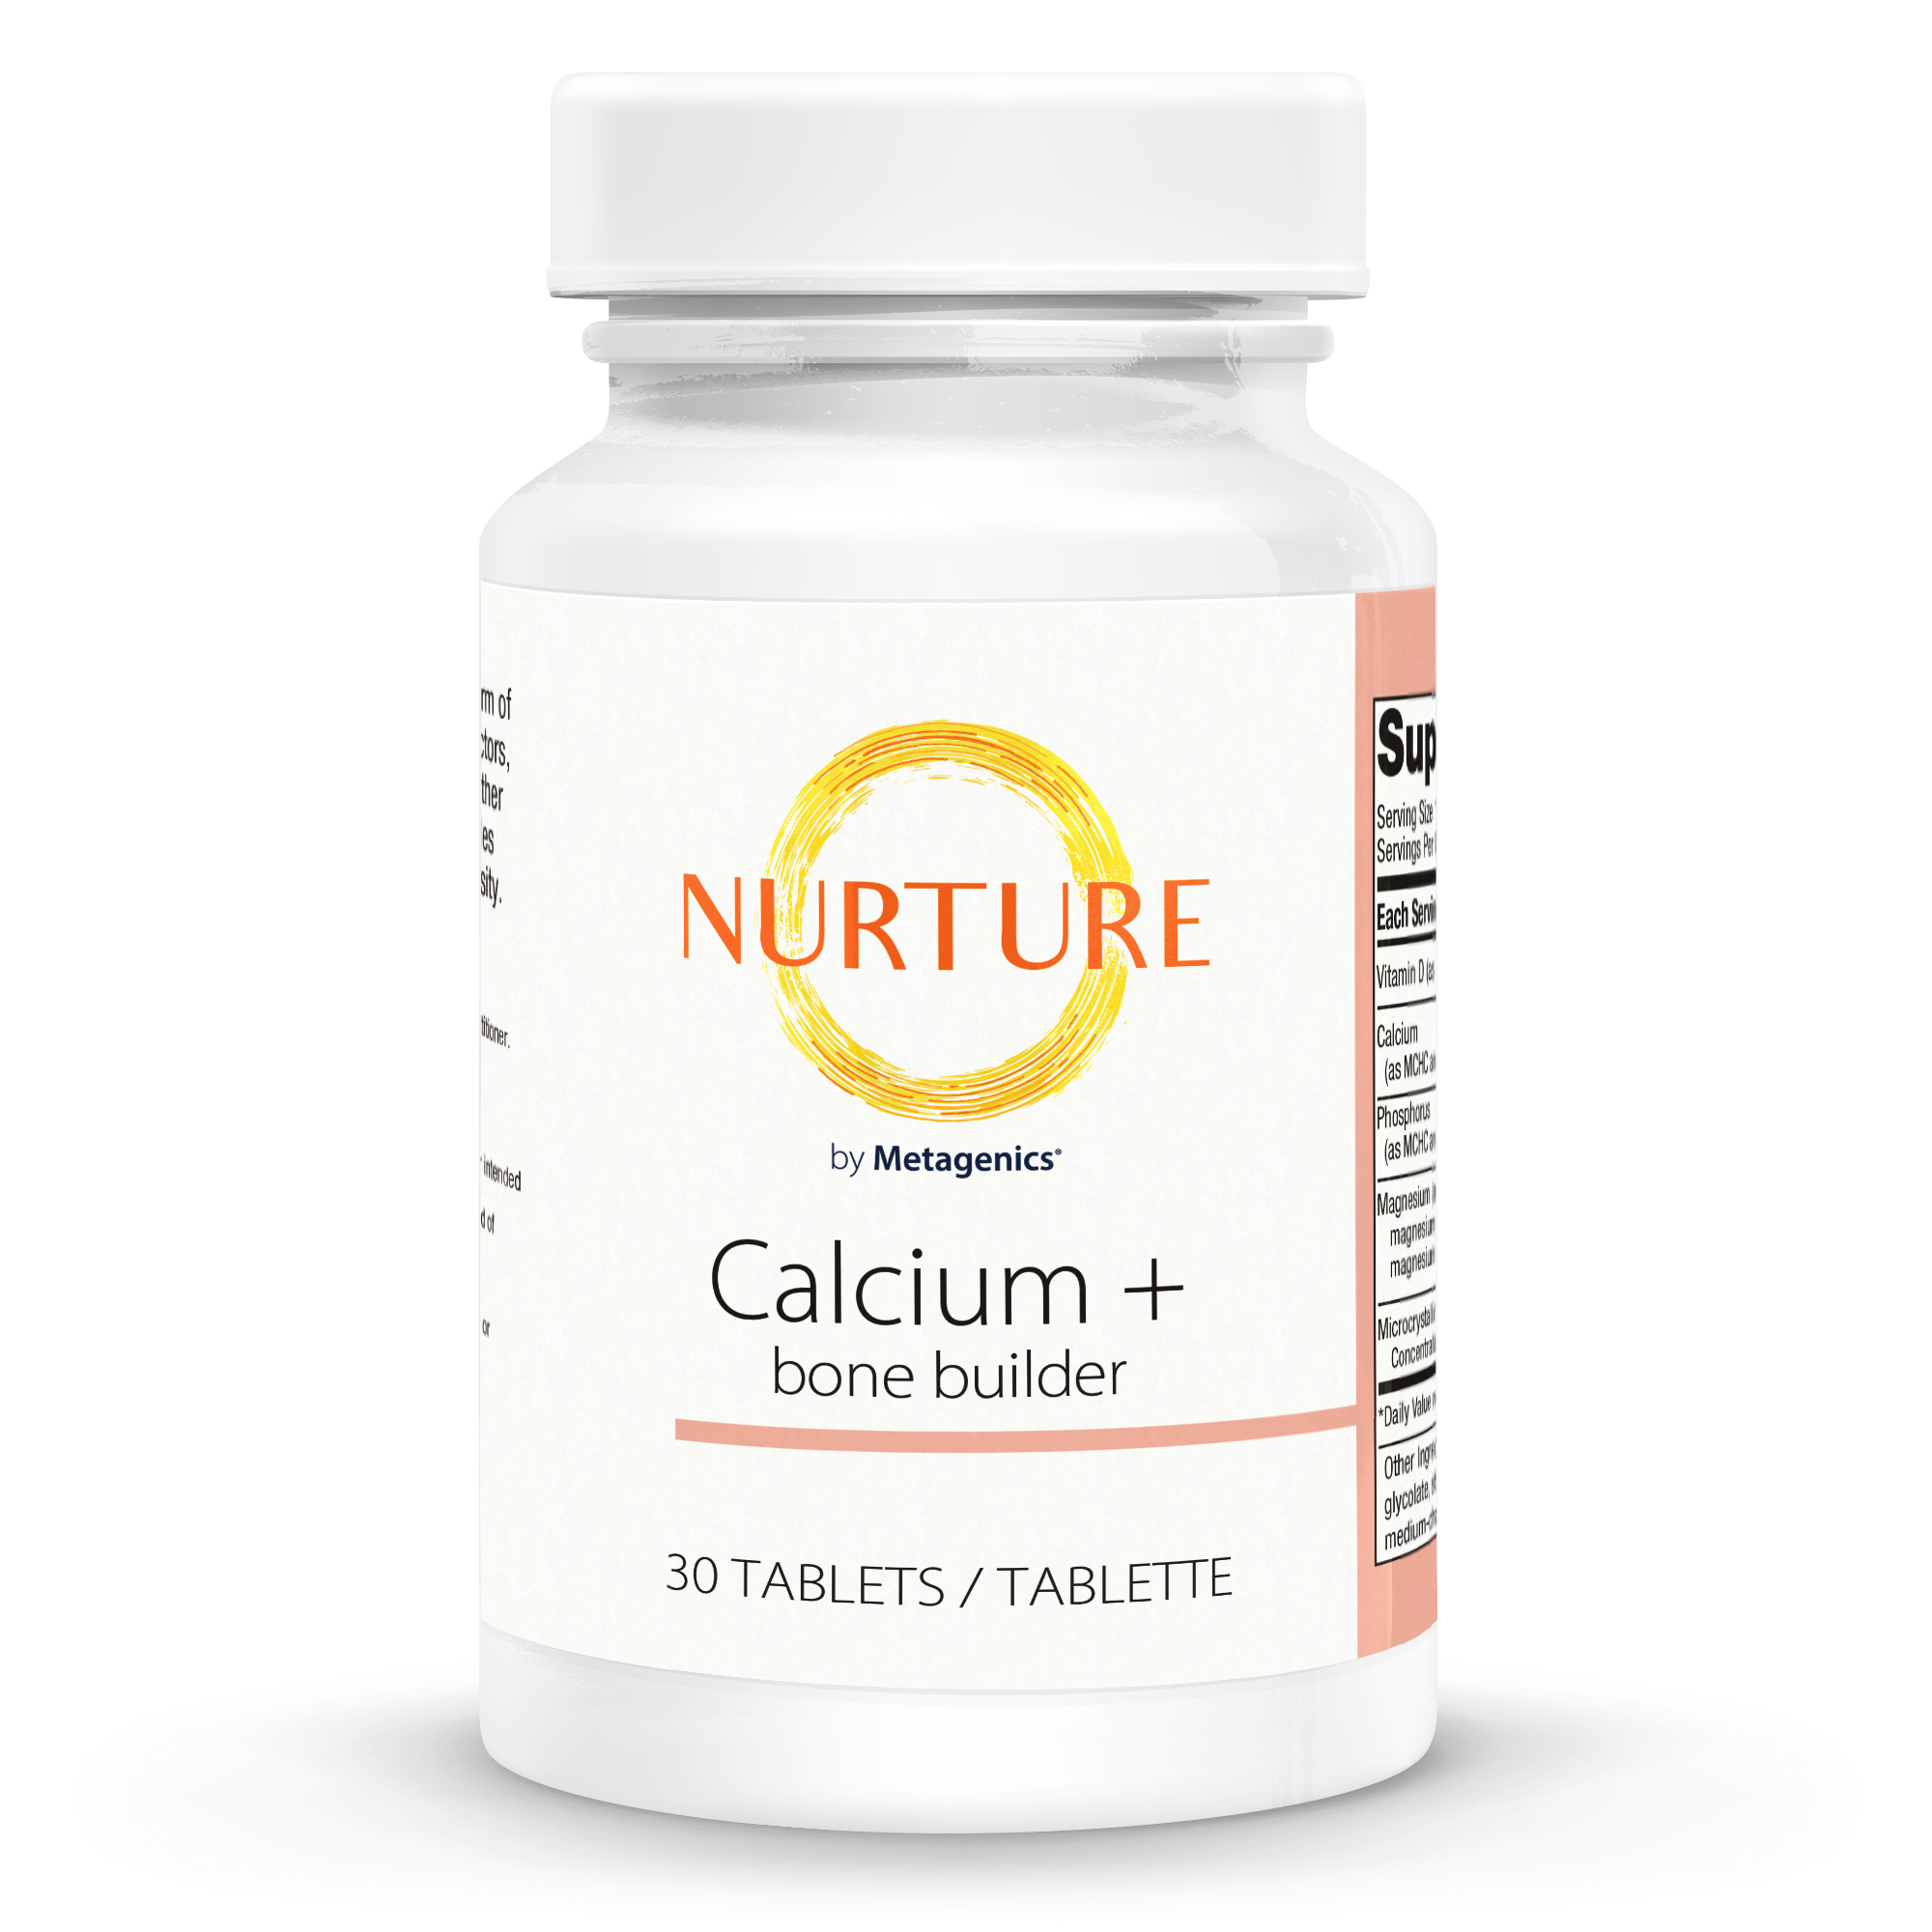 Nurture Calcium + Bone Builder